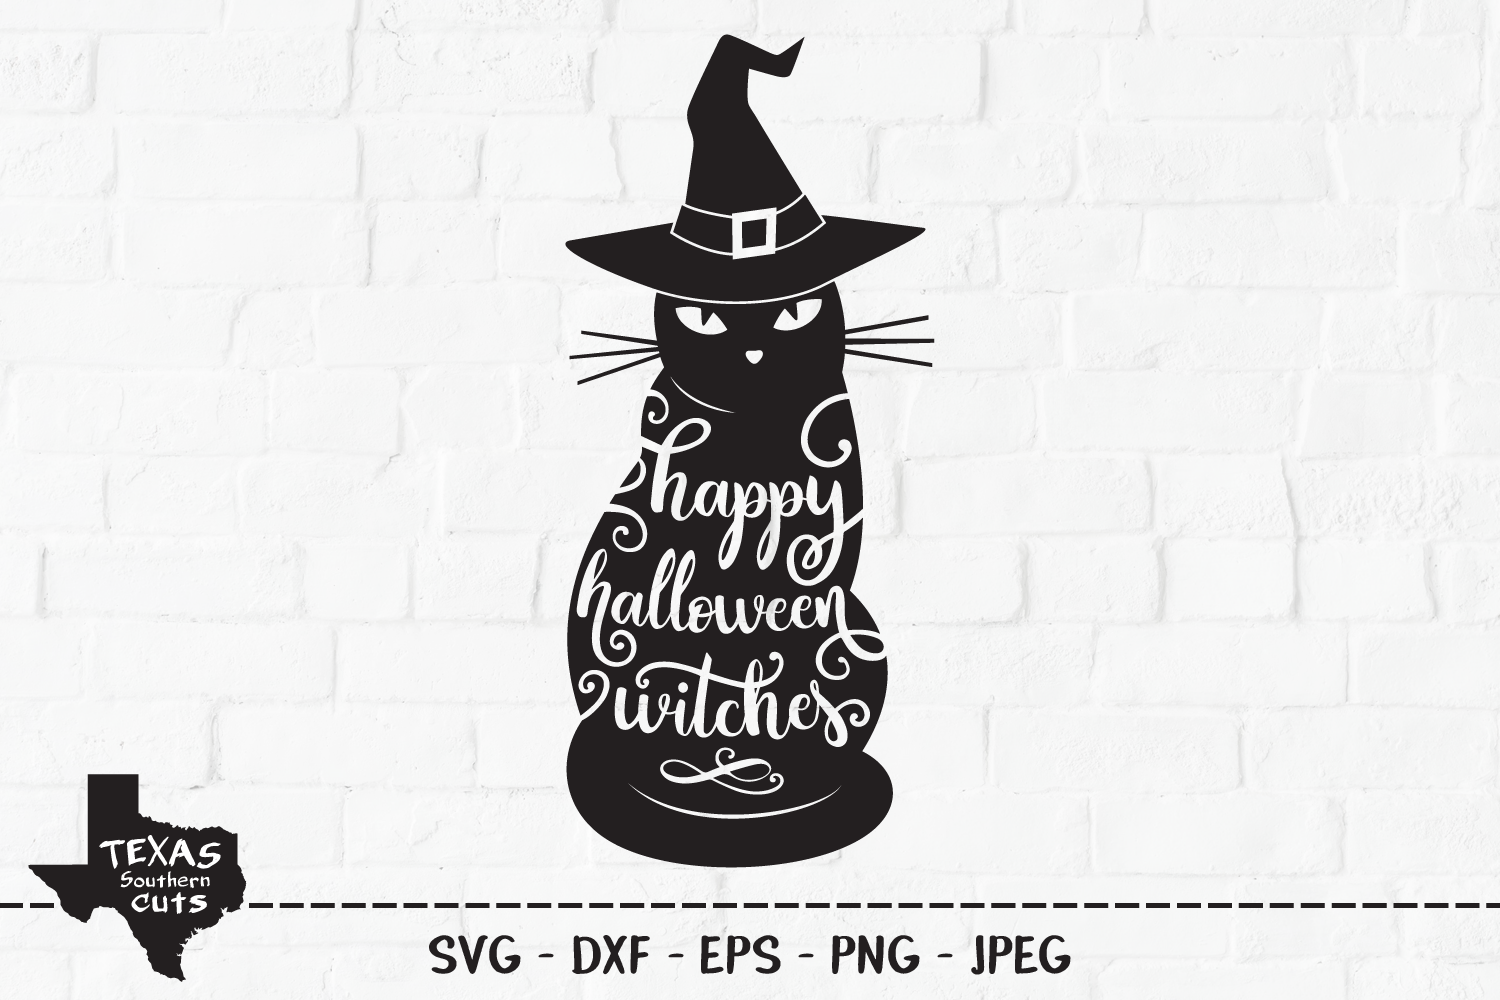 Download Free Happy Halloween Witches Cat Design Graphic By for Cricut Explore, Silhouette and other cutting machines.